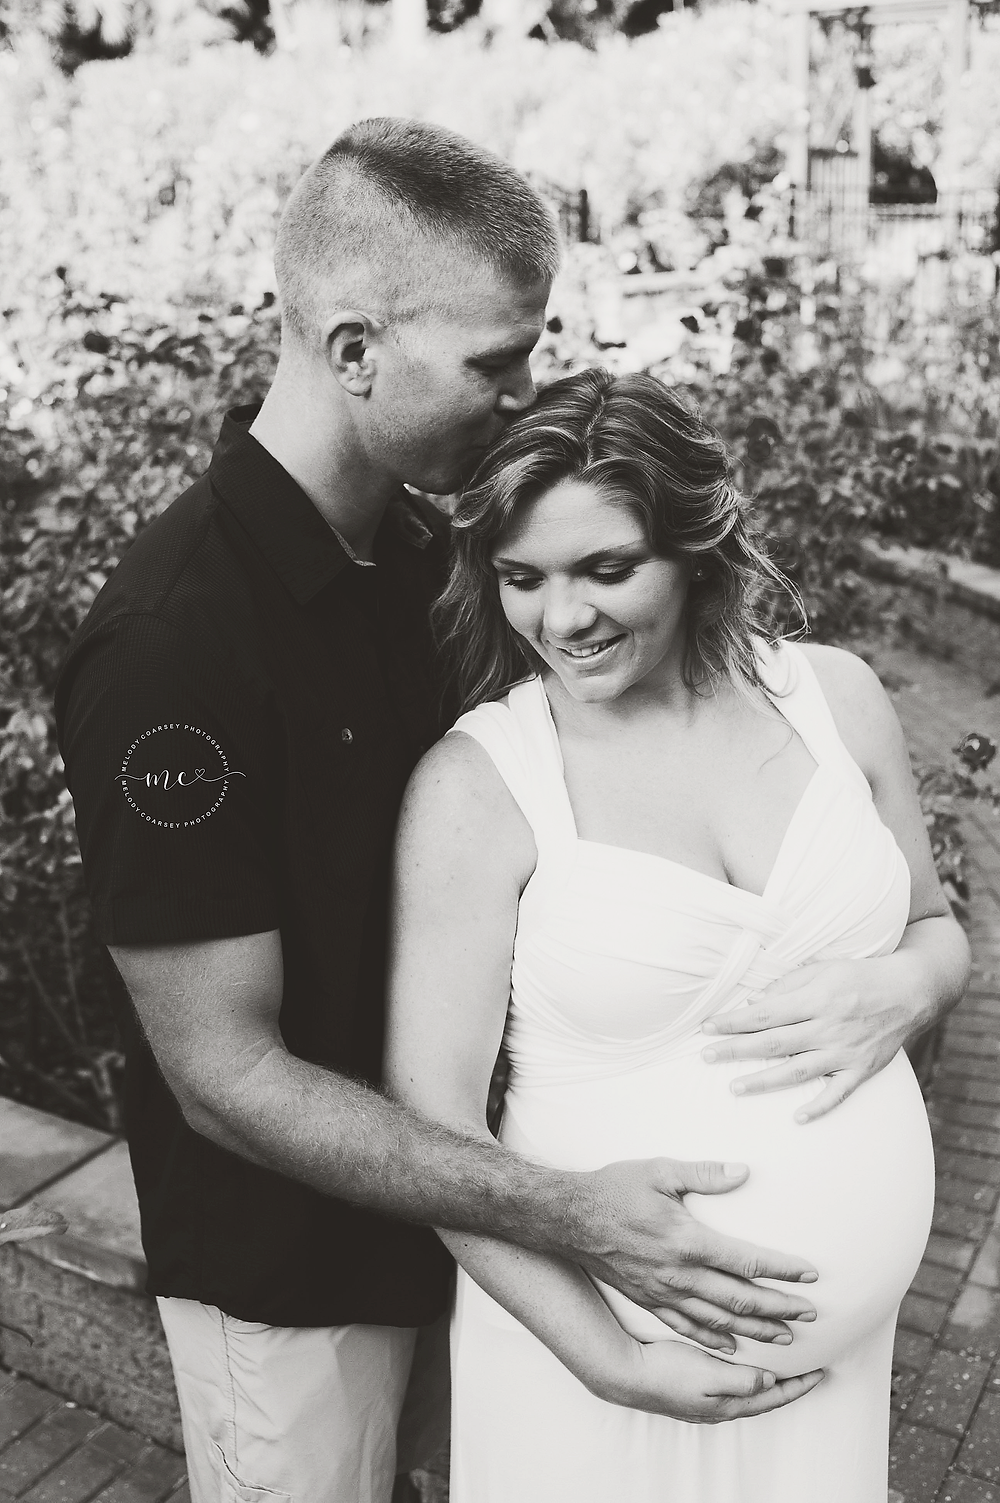 Maternity Photographers that offer Military Discounts